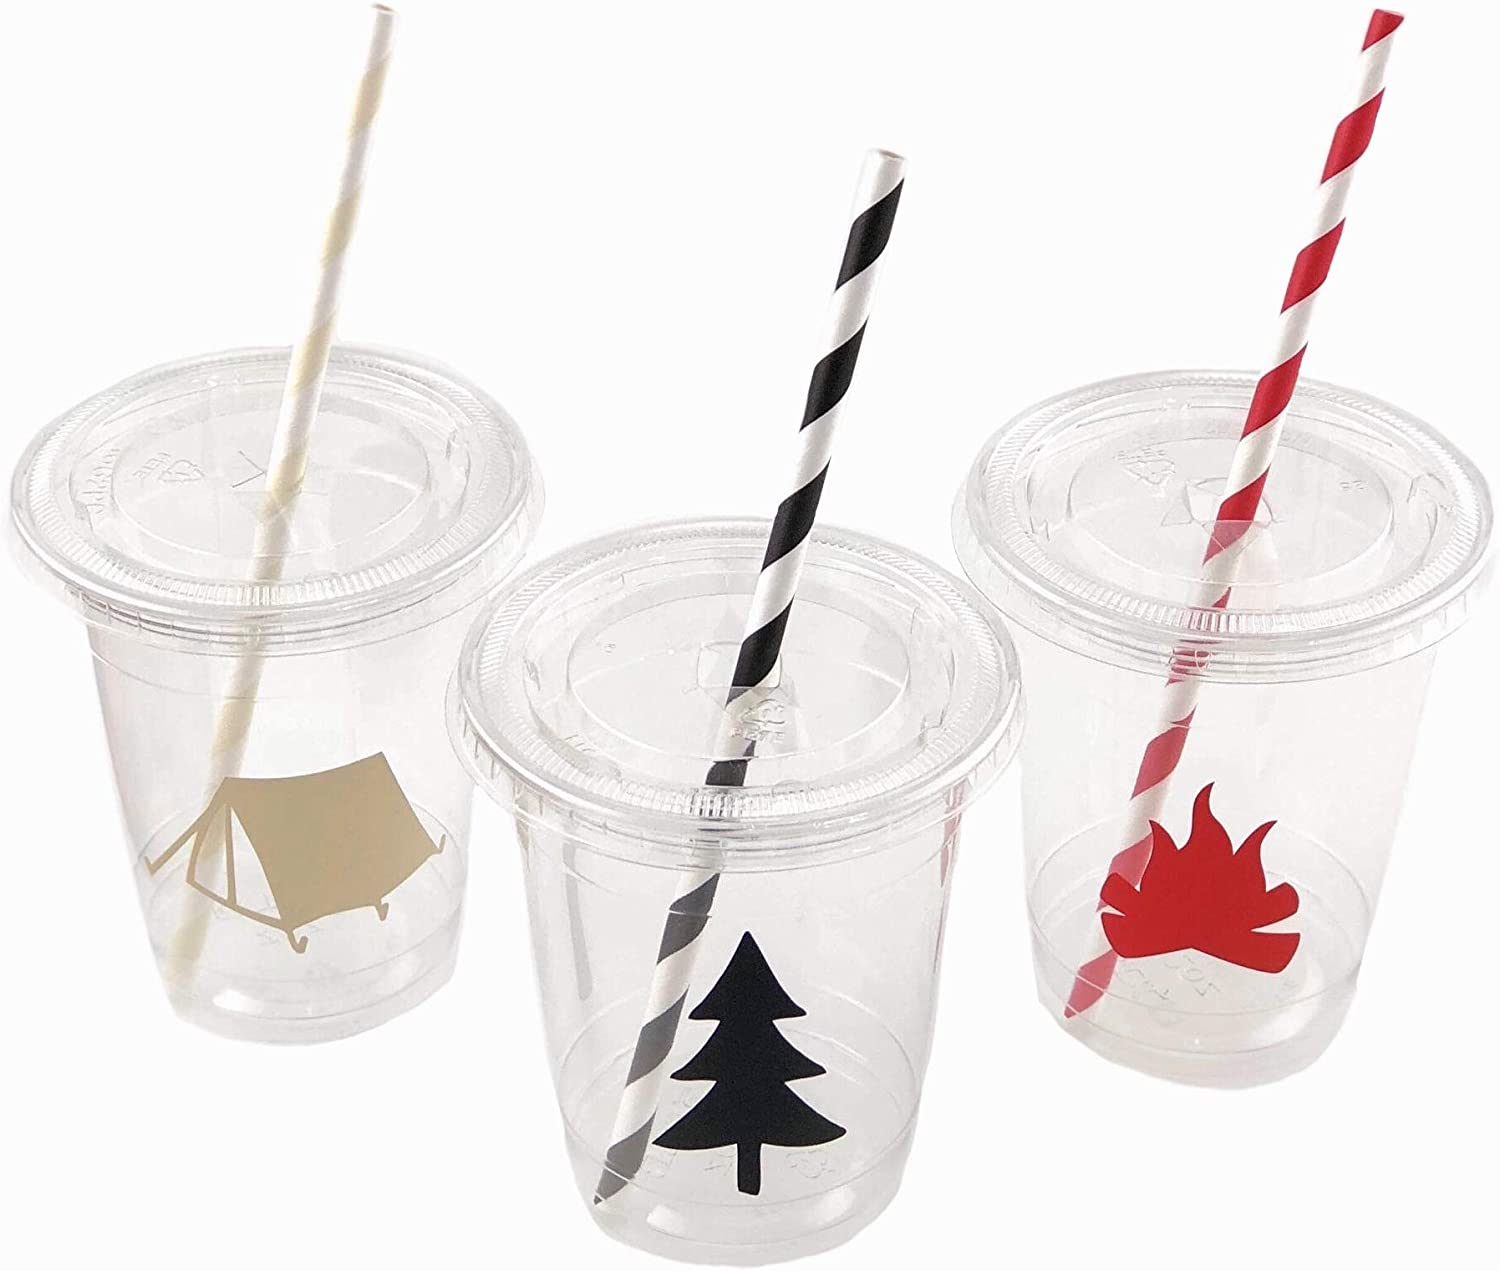 Camping Cups - Camp Party Supplies Lumberjack Birthday Baby Shower Set of 12